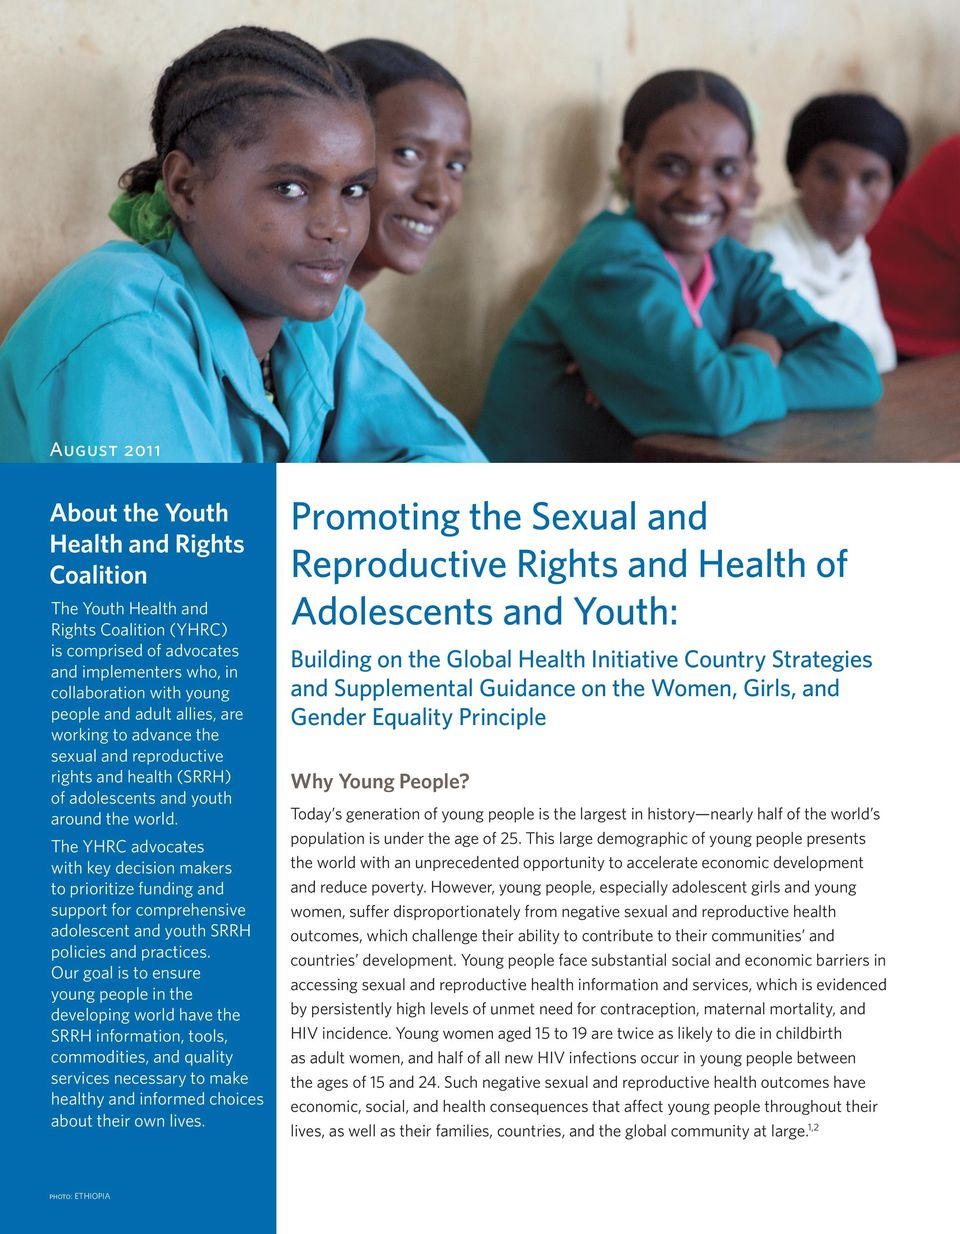 The YHRC advocates with key decision makers to prioritize funding and support for comprehensive adolescent and youth SRRH policies and practices.